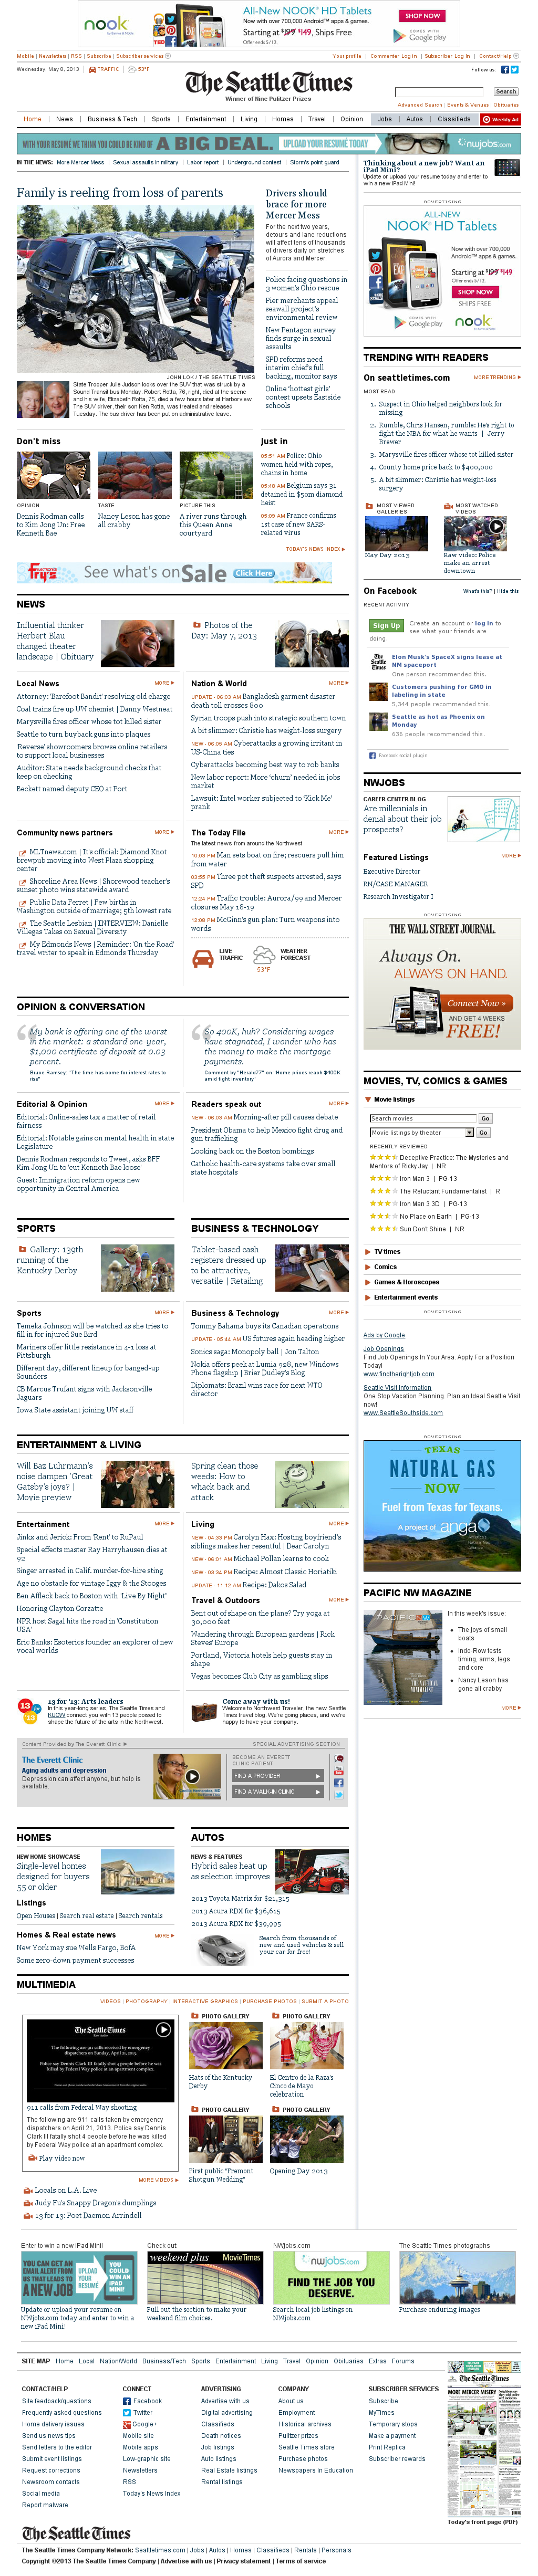 The Seattle Times at Wednesday May 8, 2013, 1:23 p.m. UTC